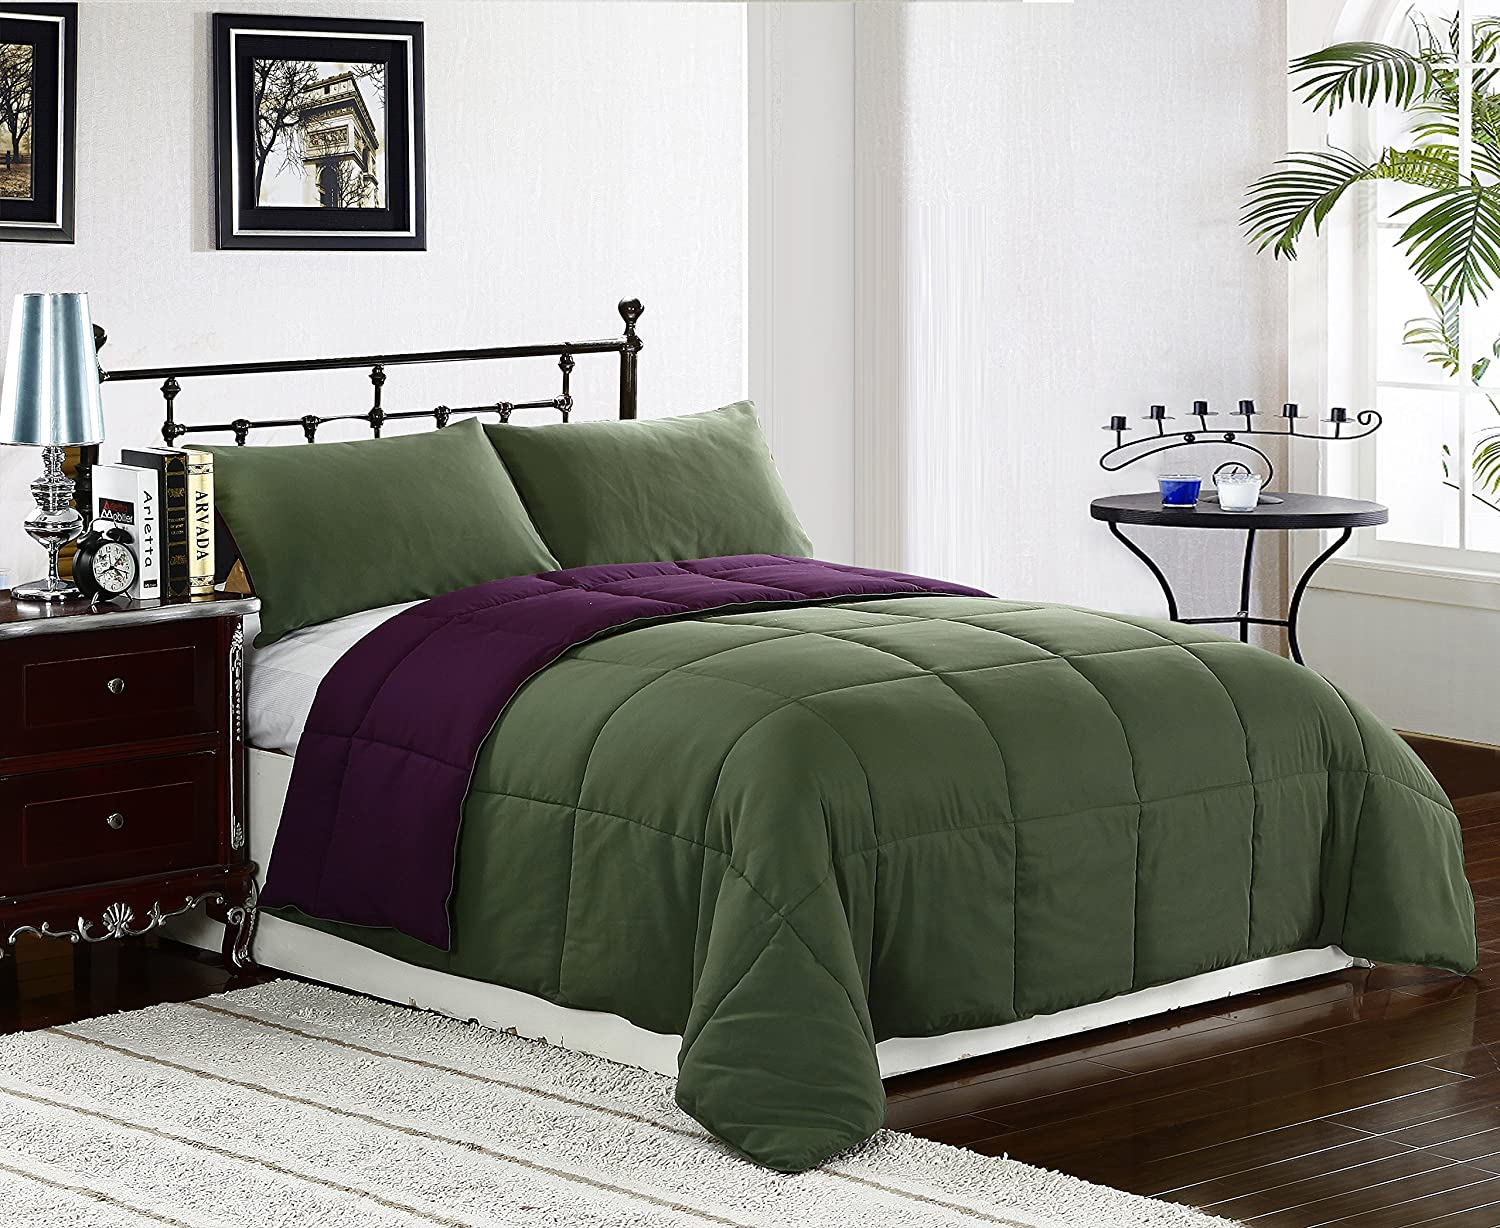 Beautiful Hunter Green Comforters Sale – Ease Bedding with Style AL32